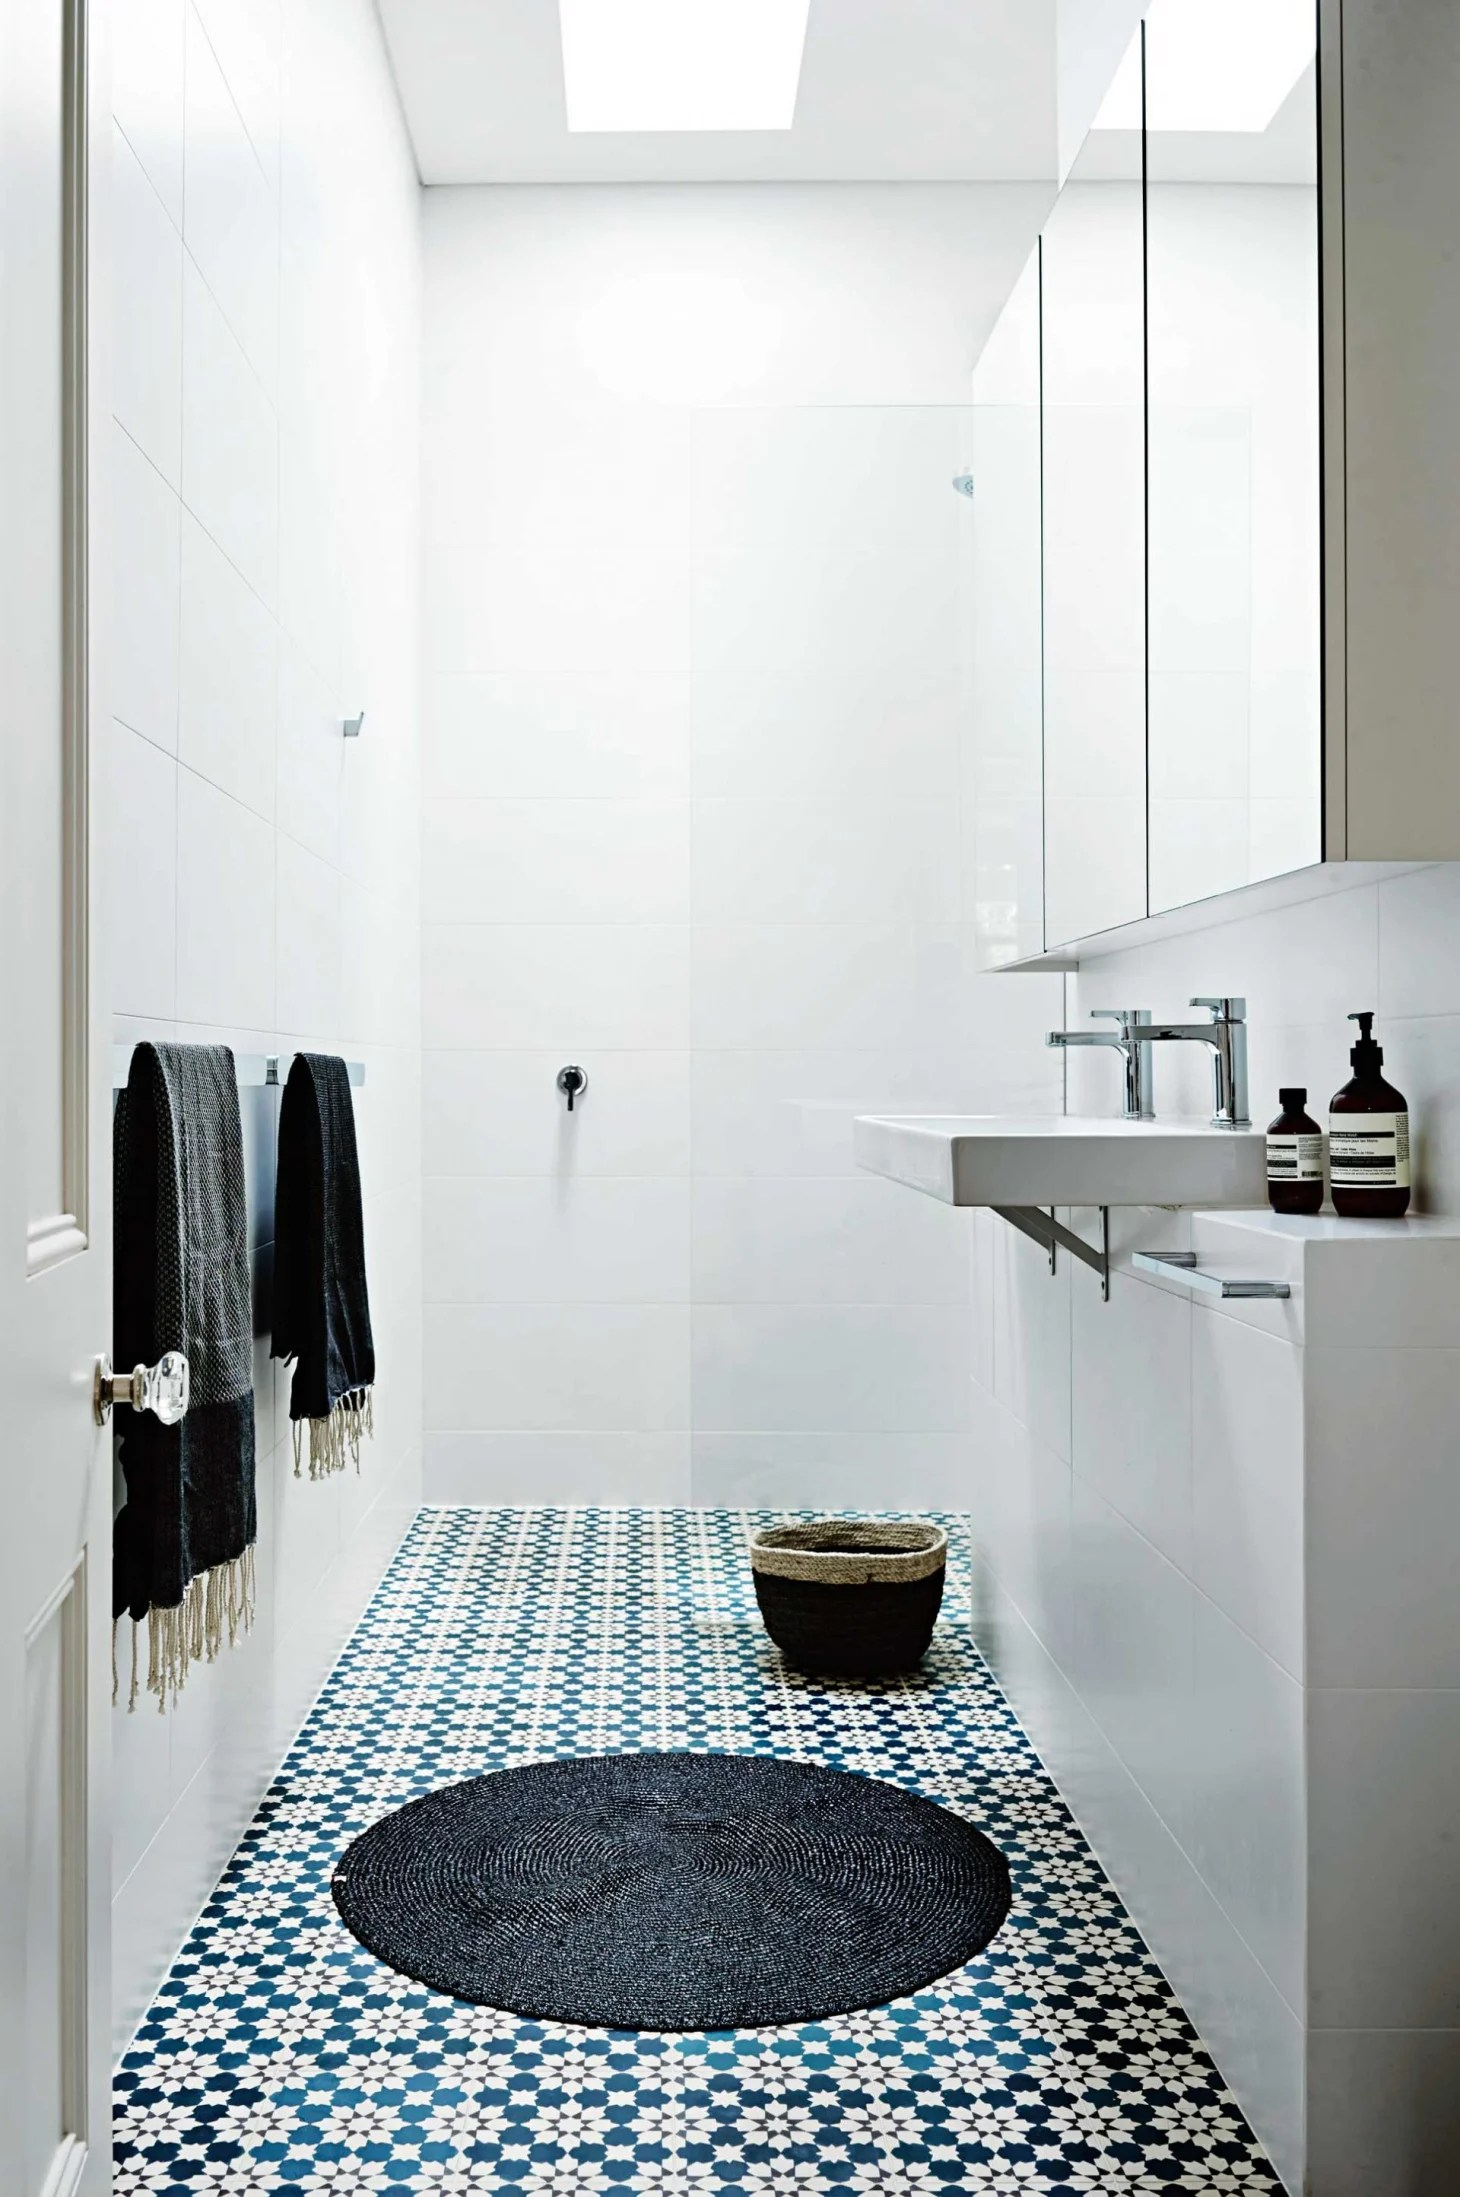 Stylish Remodeling Ideas for Small Bathrooms   Apartment ... on Small Apartment Bathroom  id=73382